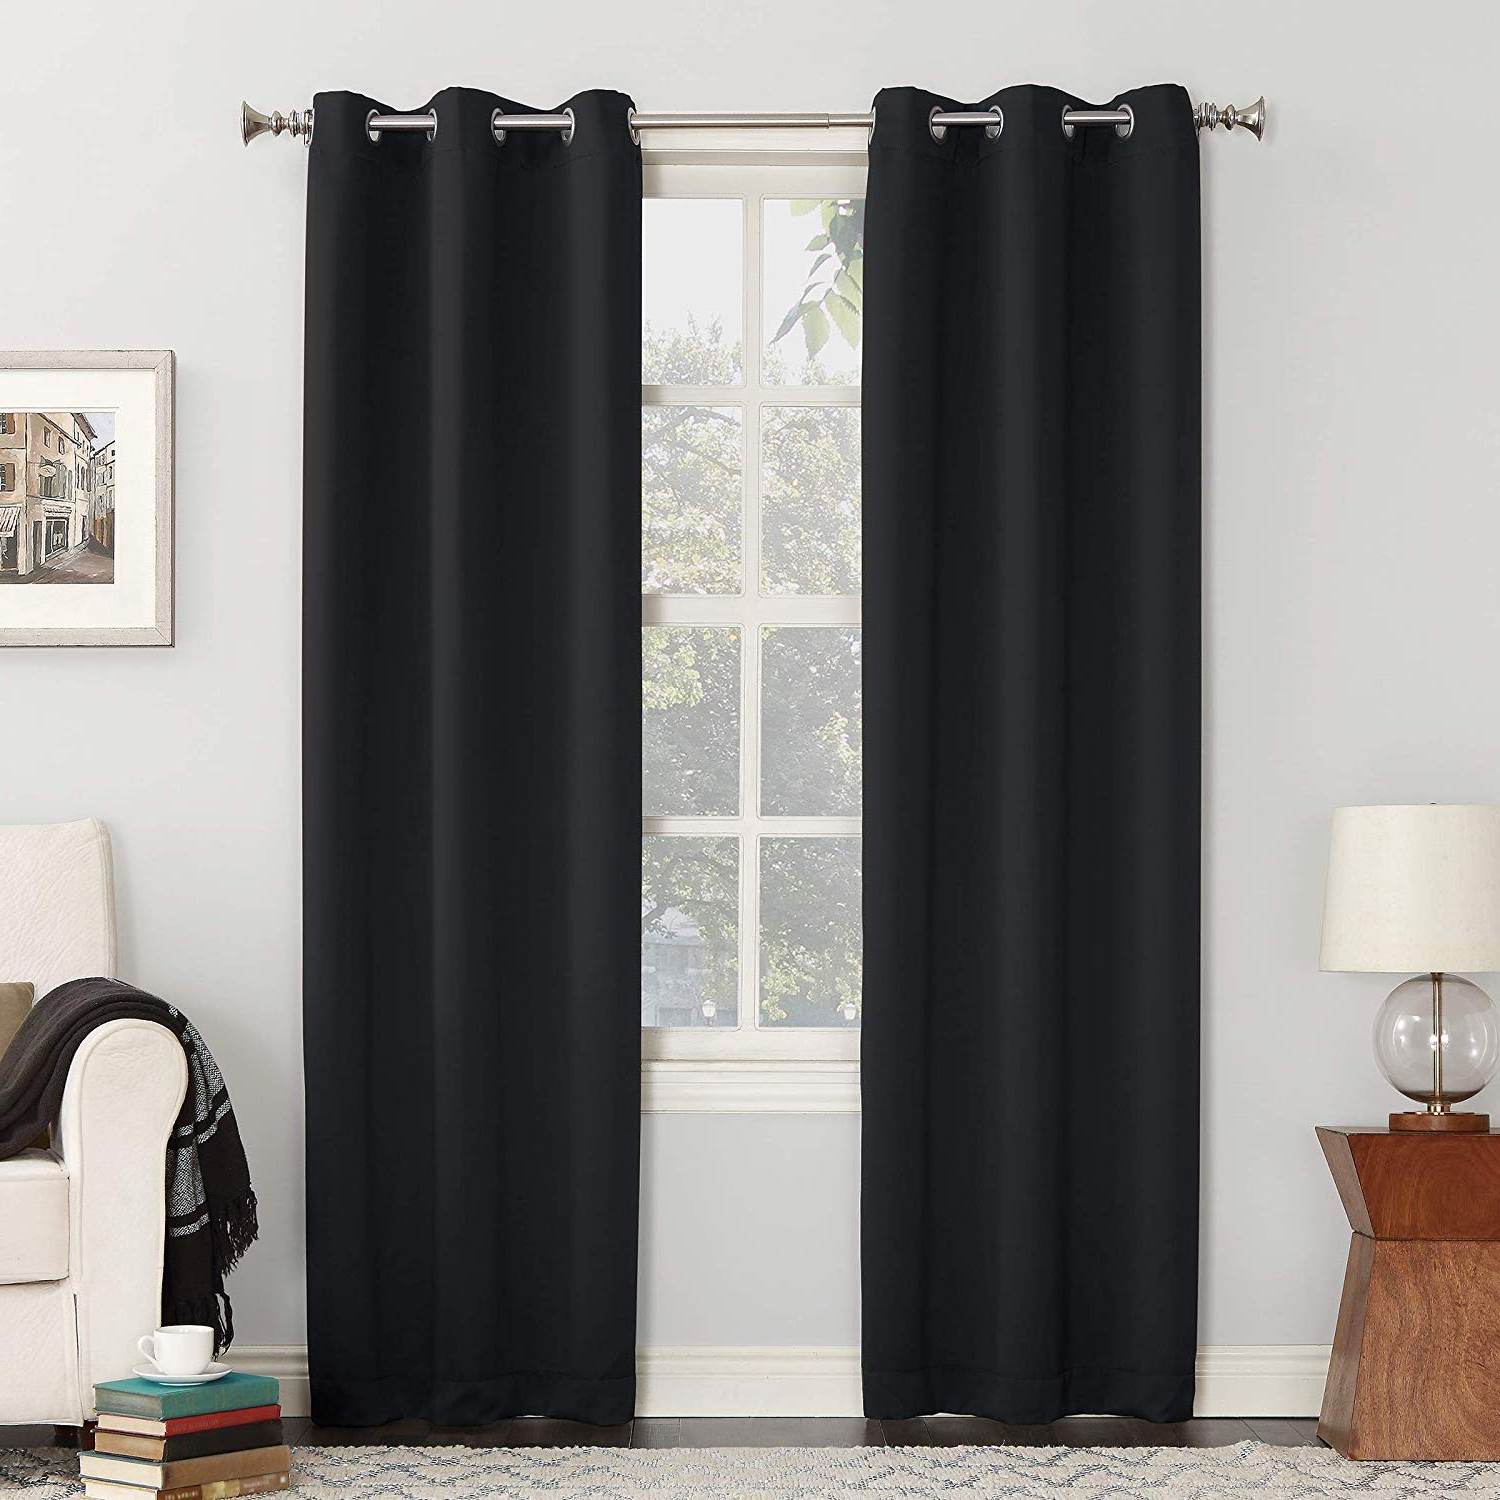 "Cooper Textured Thermal Insulated Grommet Curtain Panels Pertaining To Well Known Sun Zero Easton Blackout Energy Efficient Grommet Curtain Panel, 40"" X 84"", Black (View 9 of 20)"